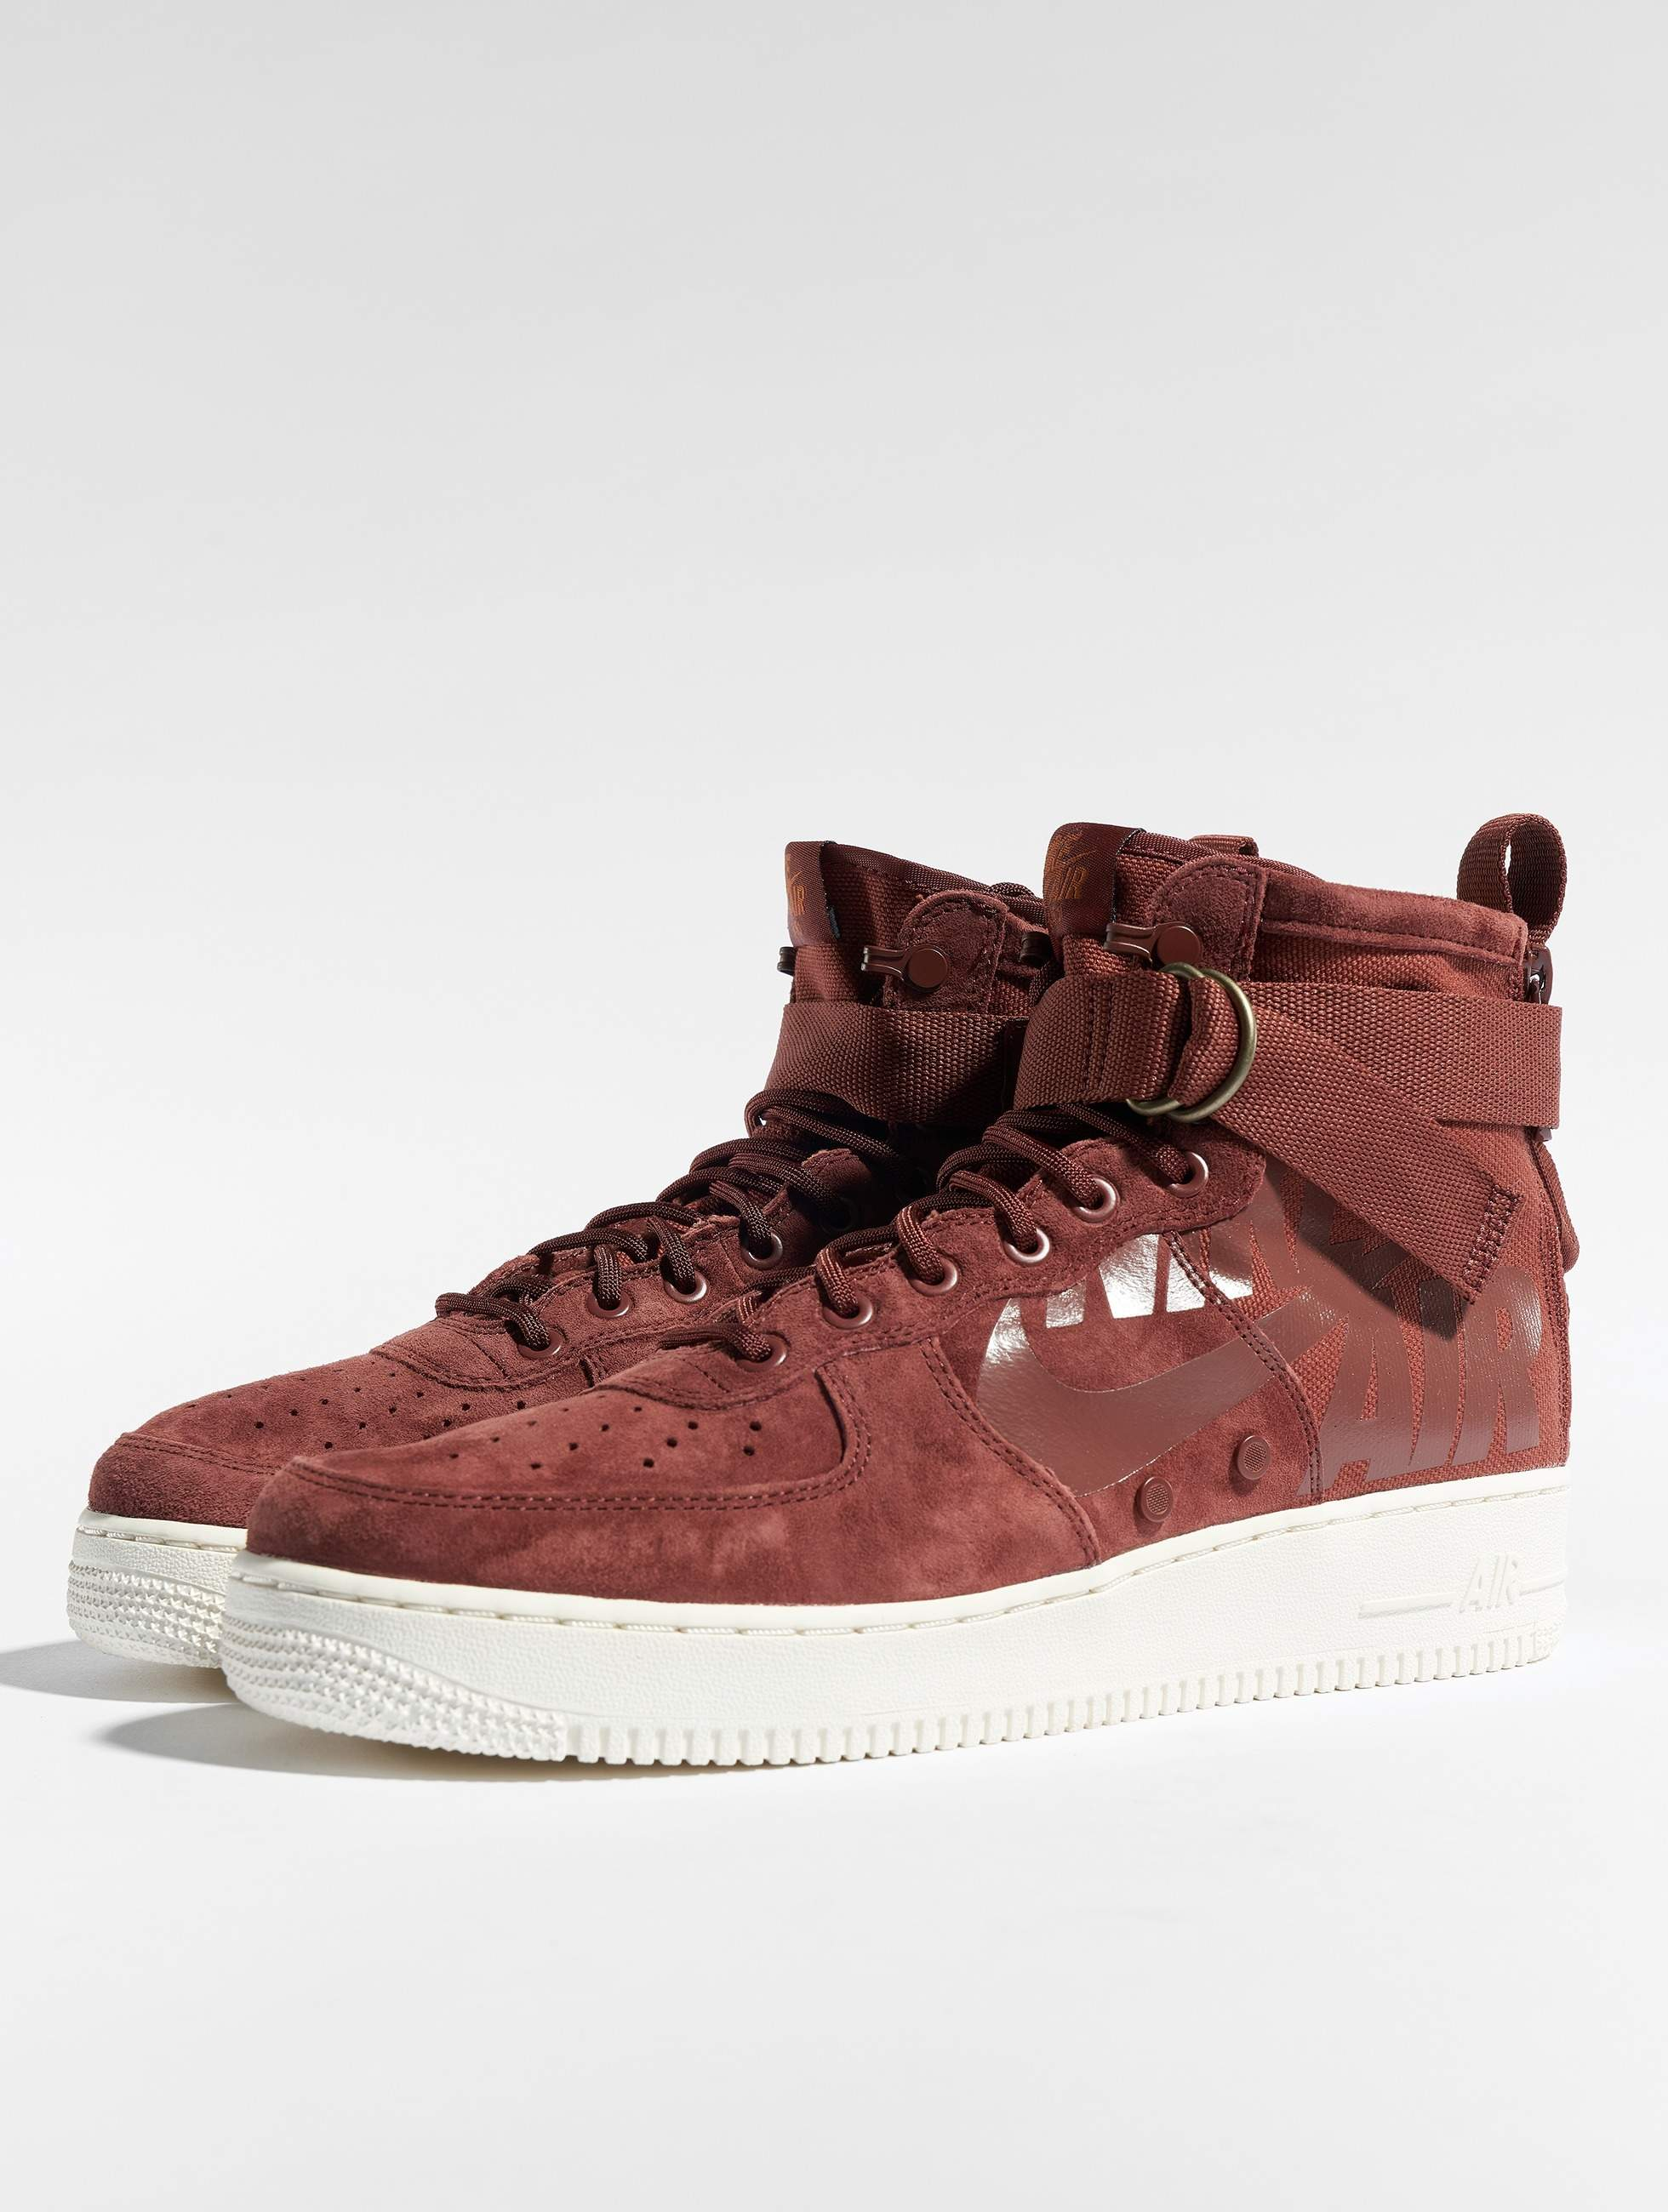 6f3fc2922d0 Nike schoen / sneaker Sf Air Force 1 Mid in bruin 536874